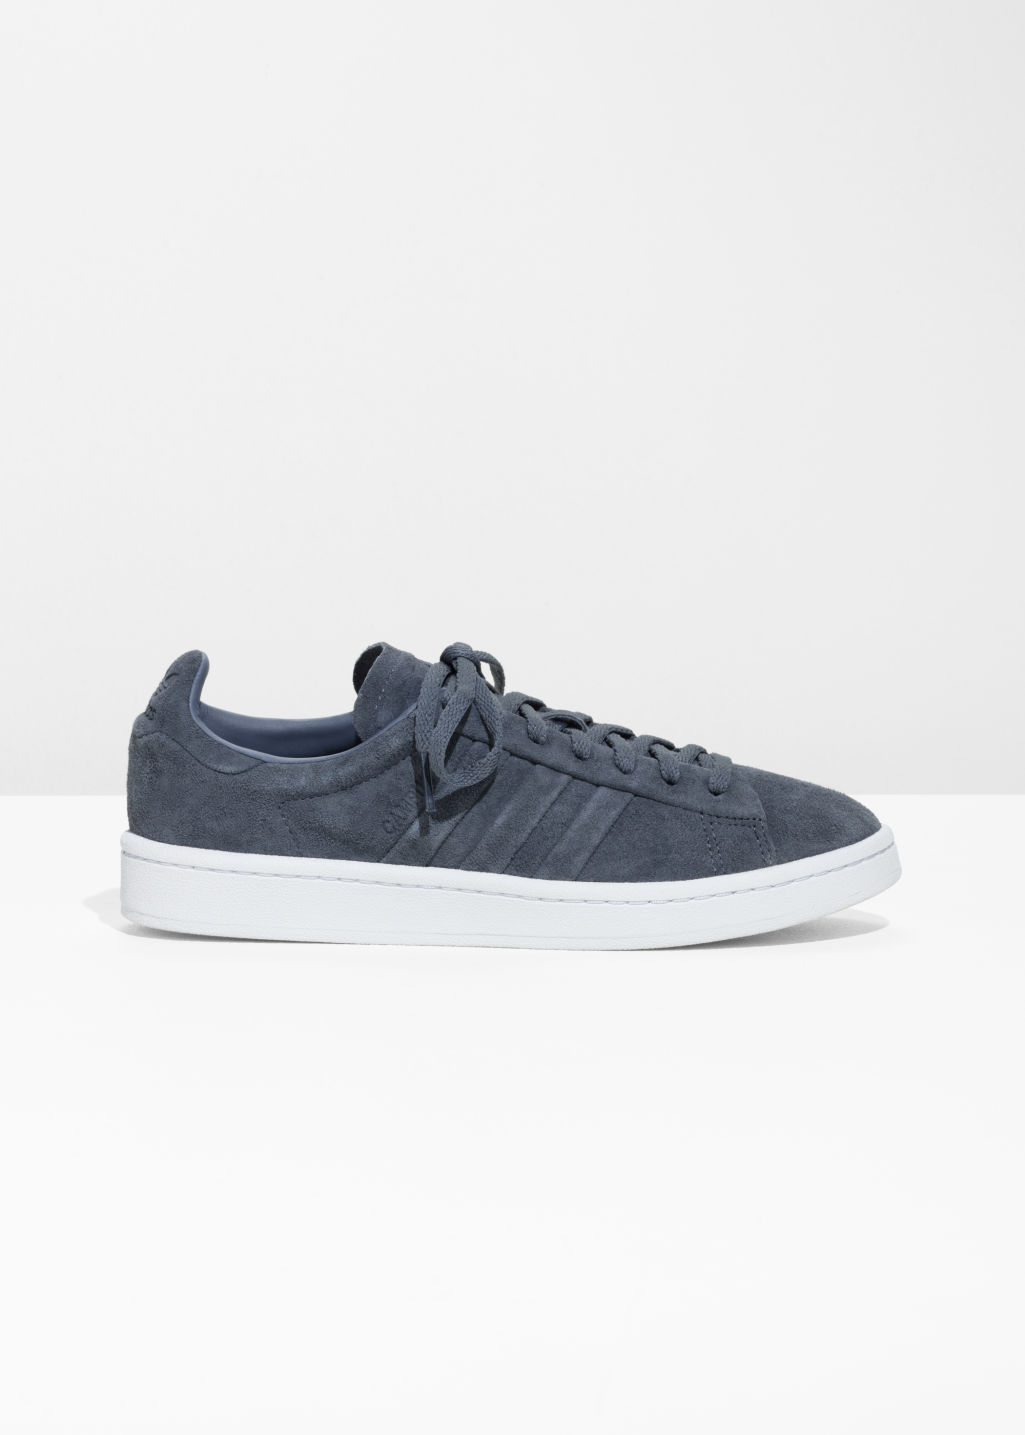 & OTHER STORIES Adidas Campus Stitch - Grey Envío gratuito Últimas colecciones TFr9Ro